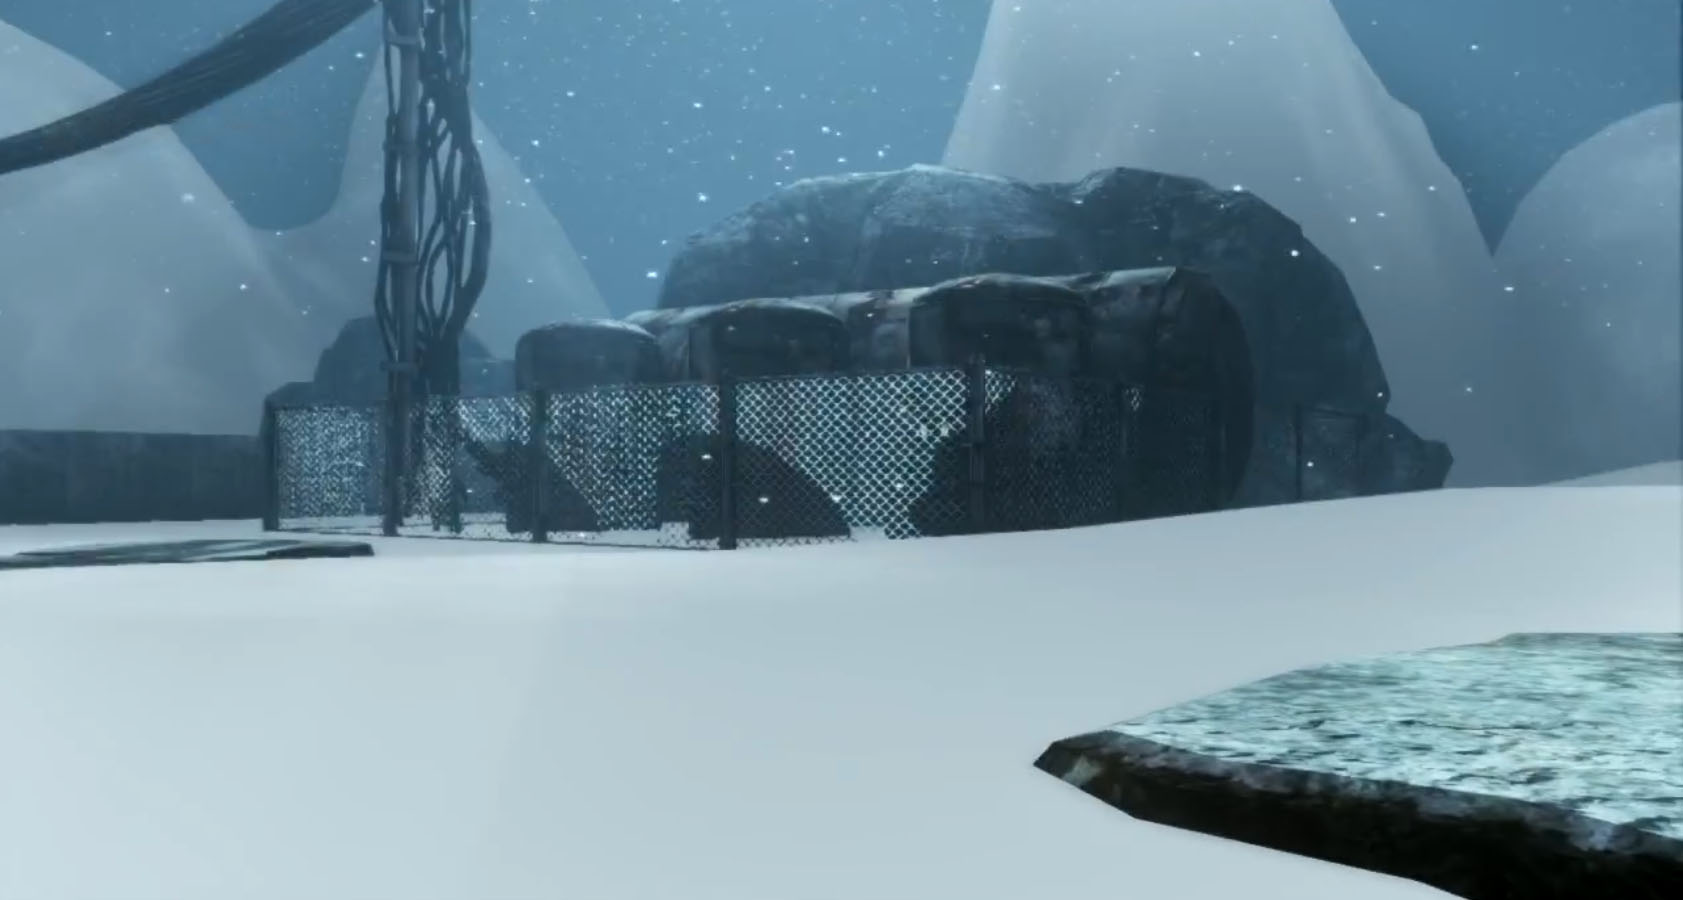 Level Design experience in UDK as well as Kismet and Matinee